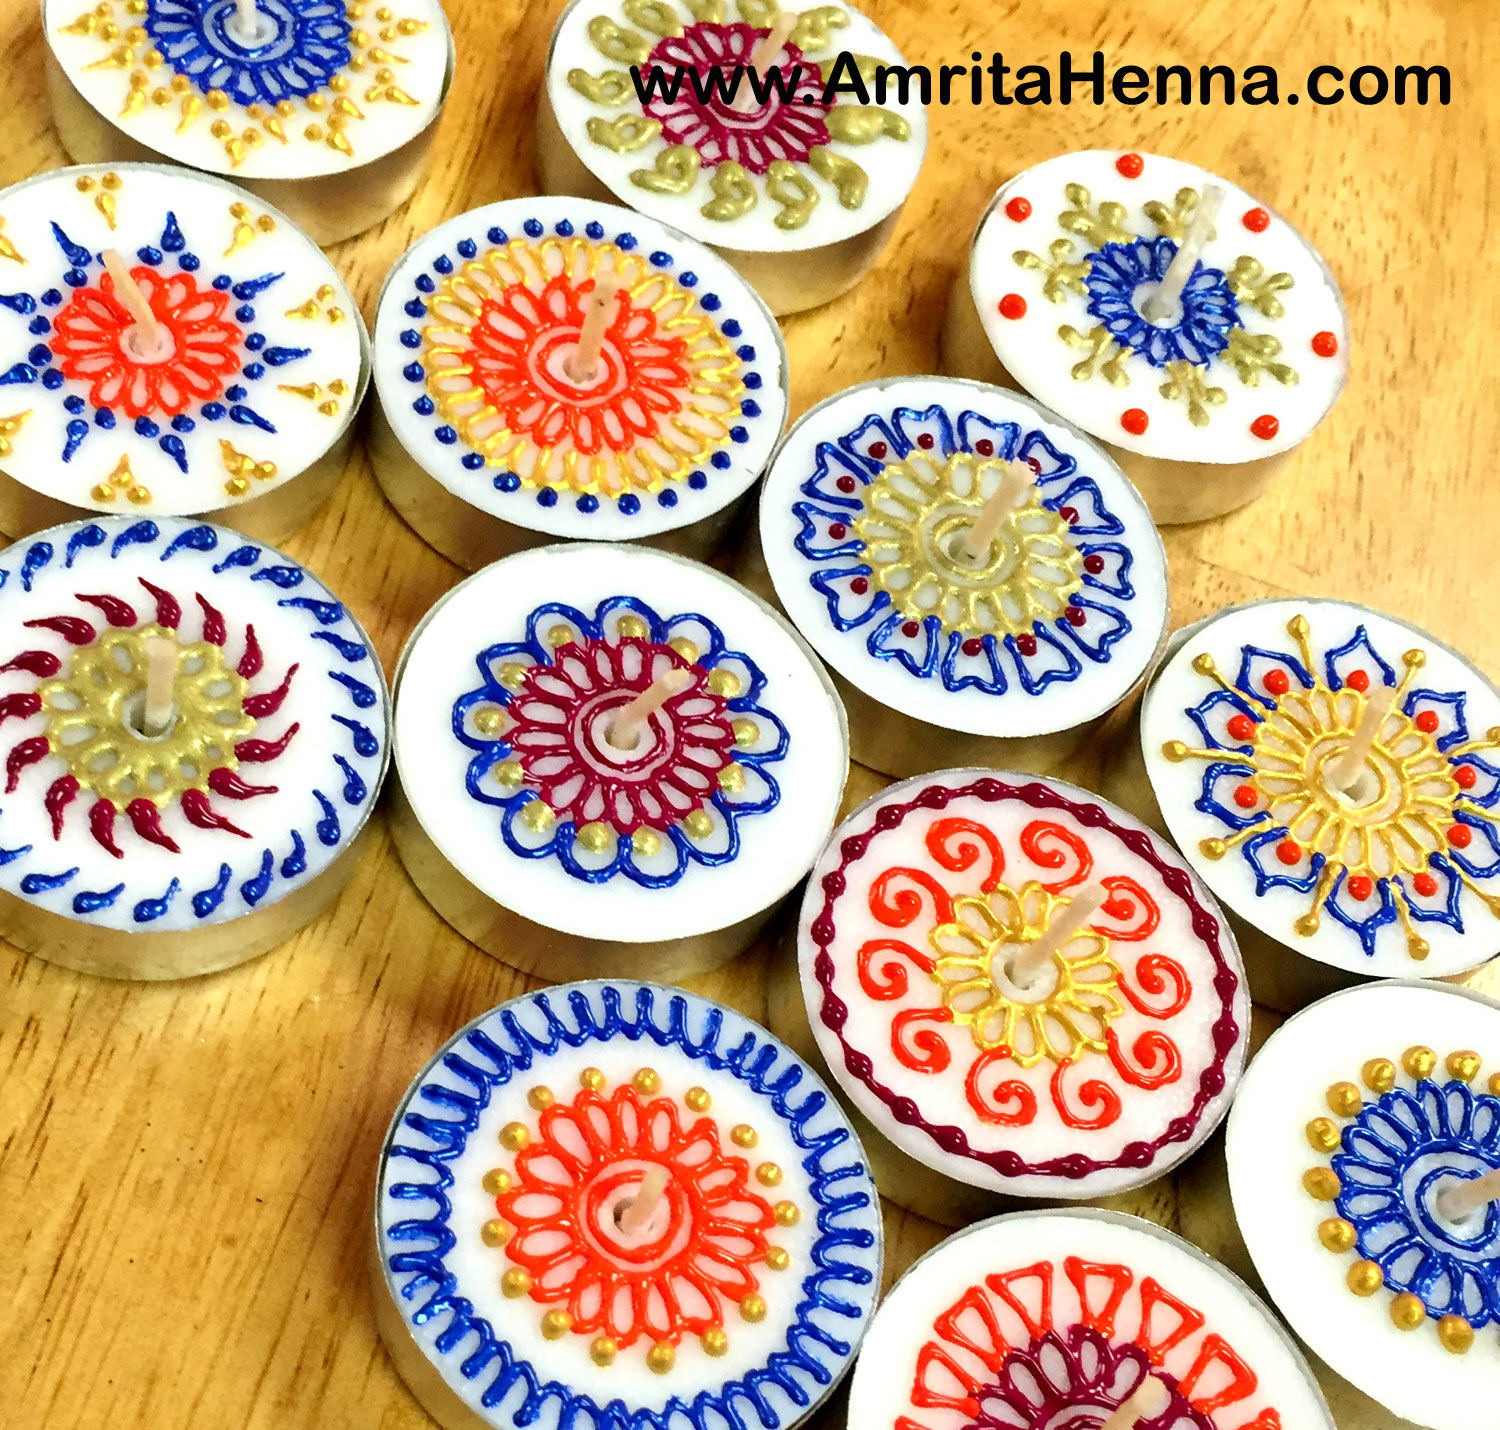 DIY Henna Designs Candles - Decorative Mehndi Design Candles - Henna Candles Decor Candles Ideas - Handmade Candles with Henna Mehndi Designs - DIY Henna Mehendi Inspired Tea Light Candles - Make at Home Henna Craft Candles - Mehndi Design on Tea Light Candles - DIY Creative Henna Art Inspired Handmade Candles